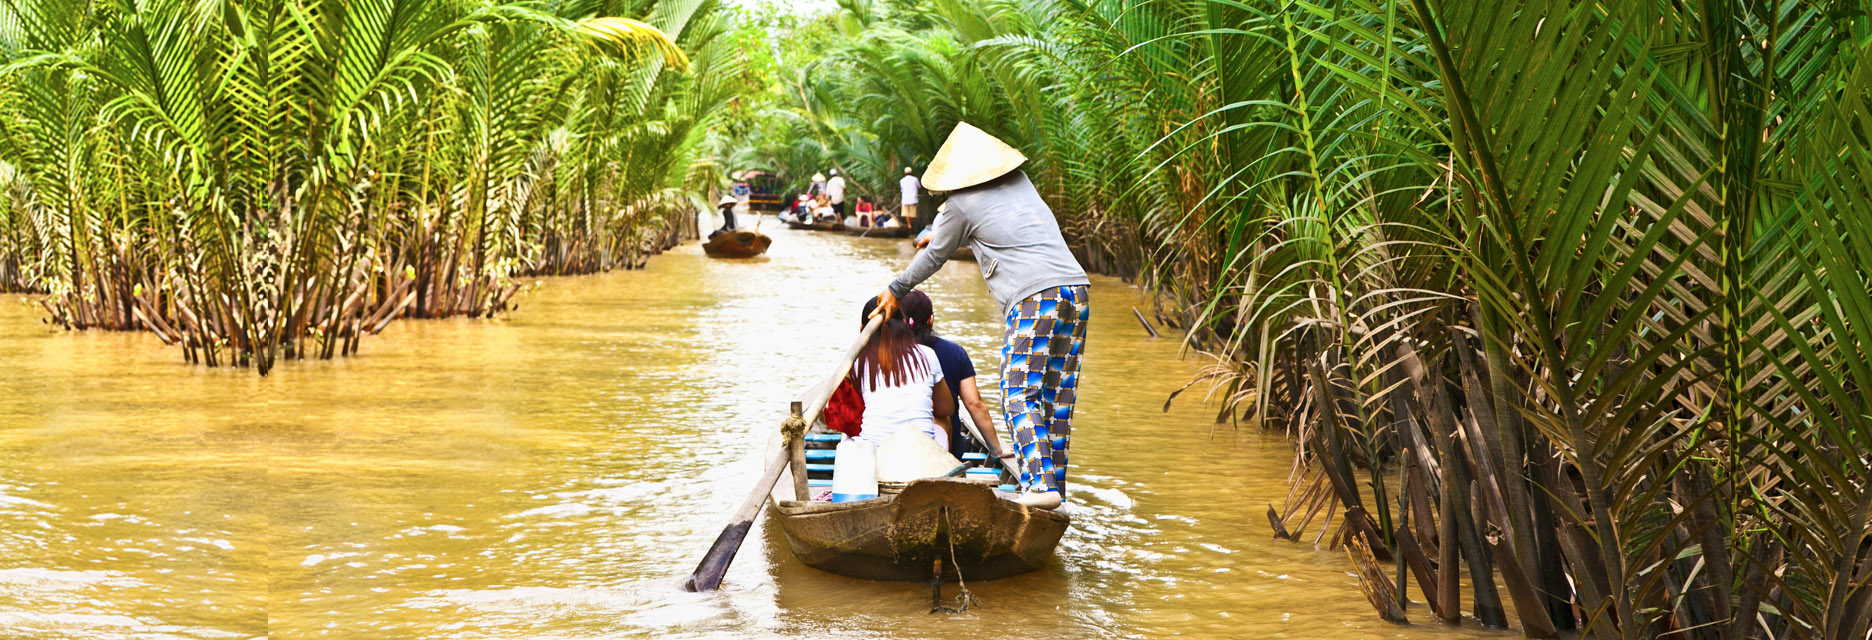 Day Tour From Ho Chi Minh: Mekong Delta, Vinh Trang Temple